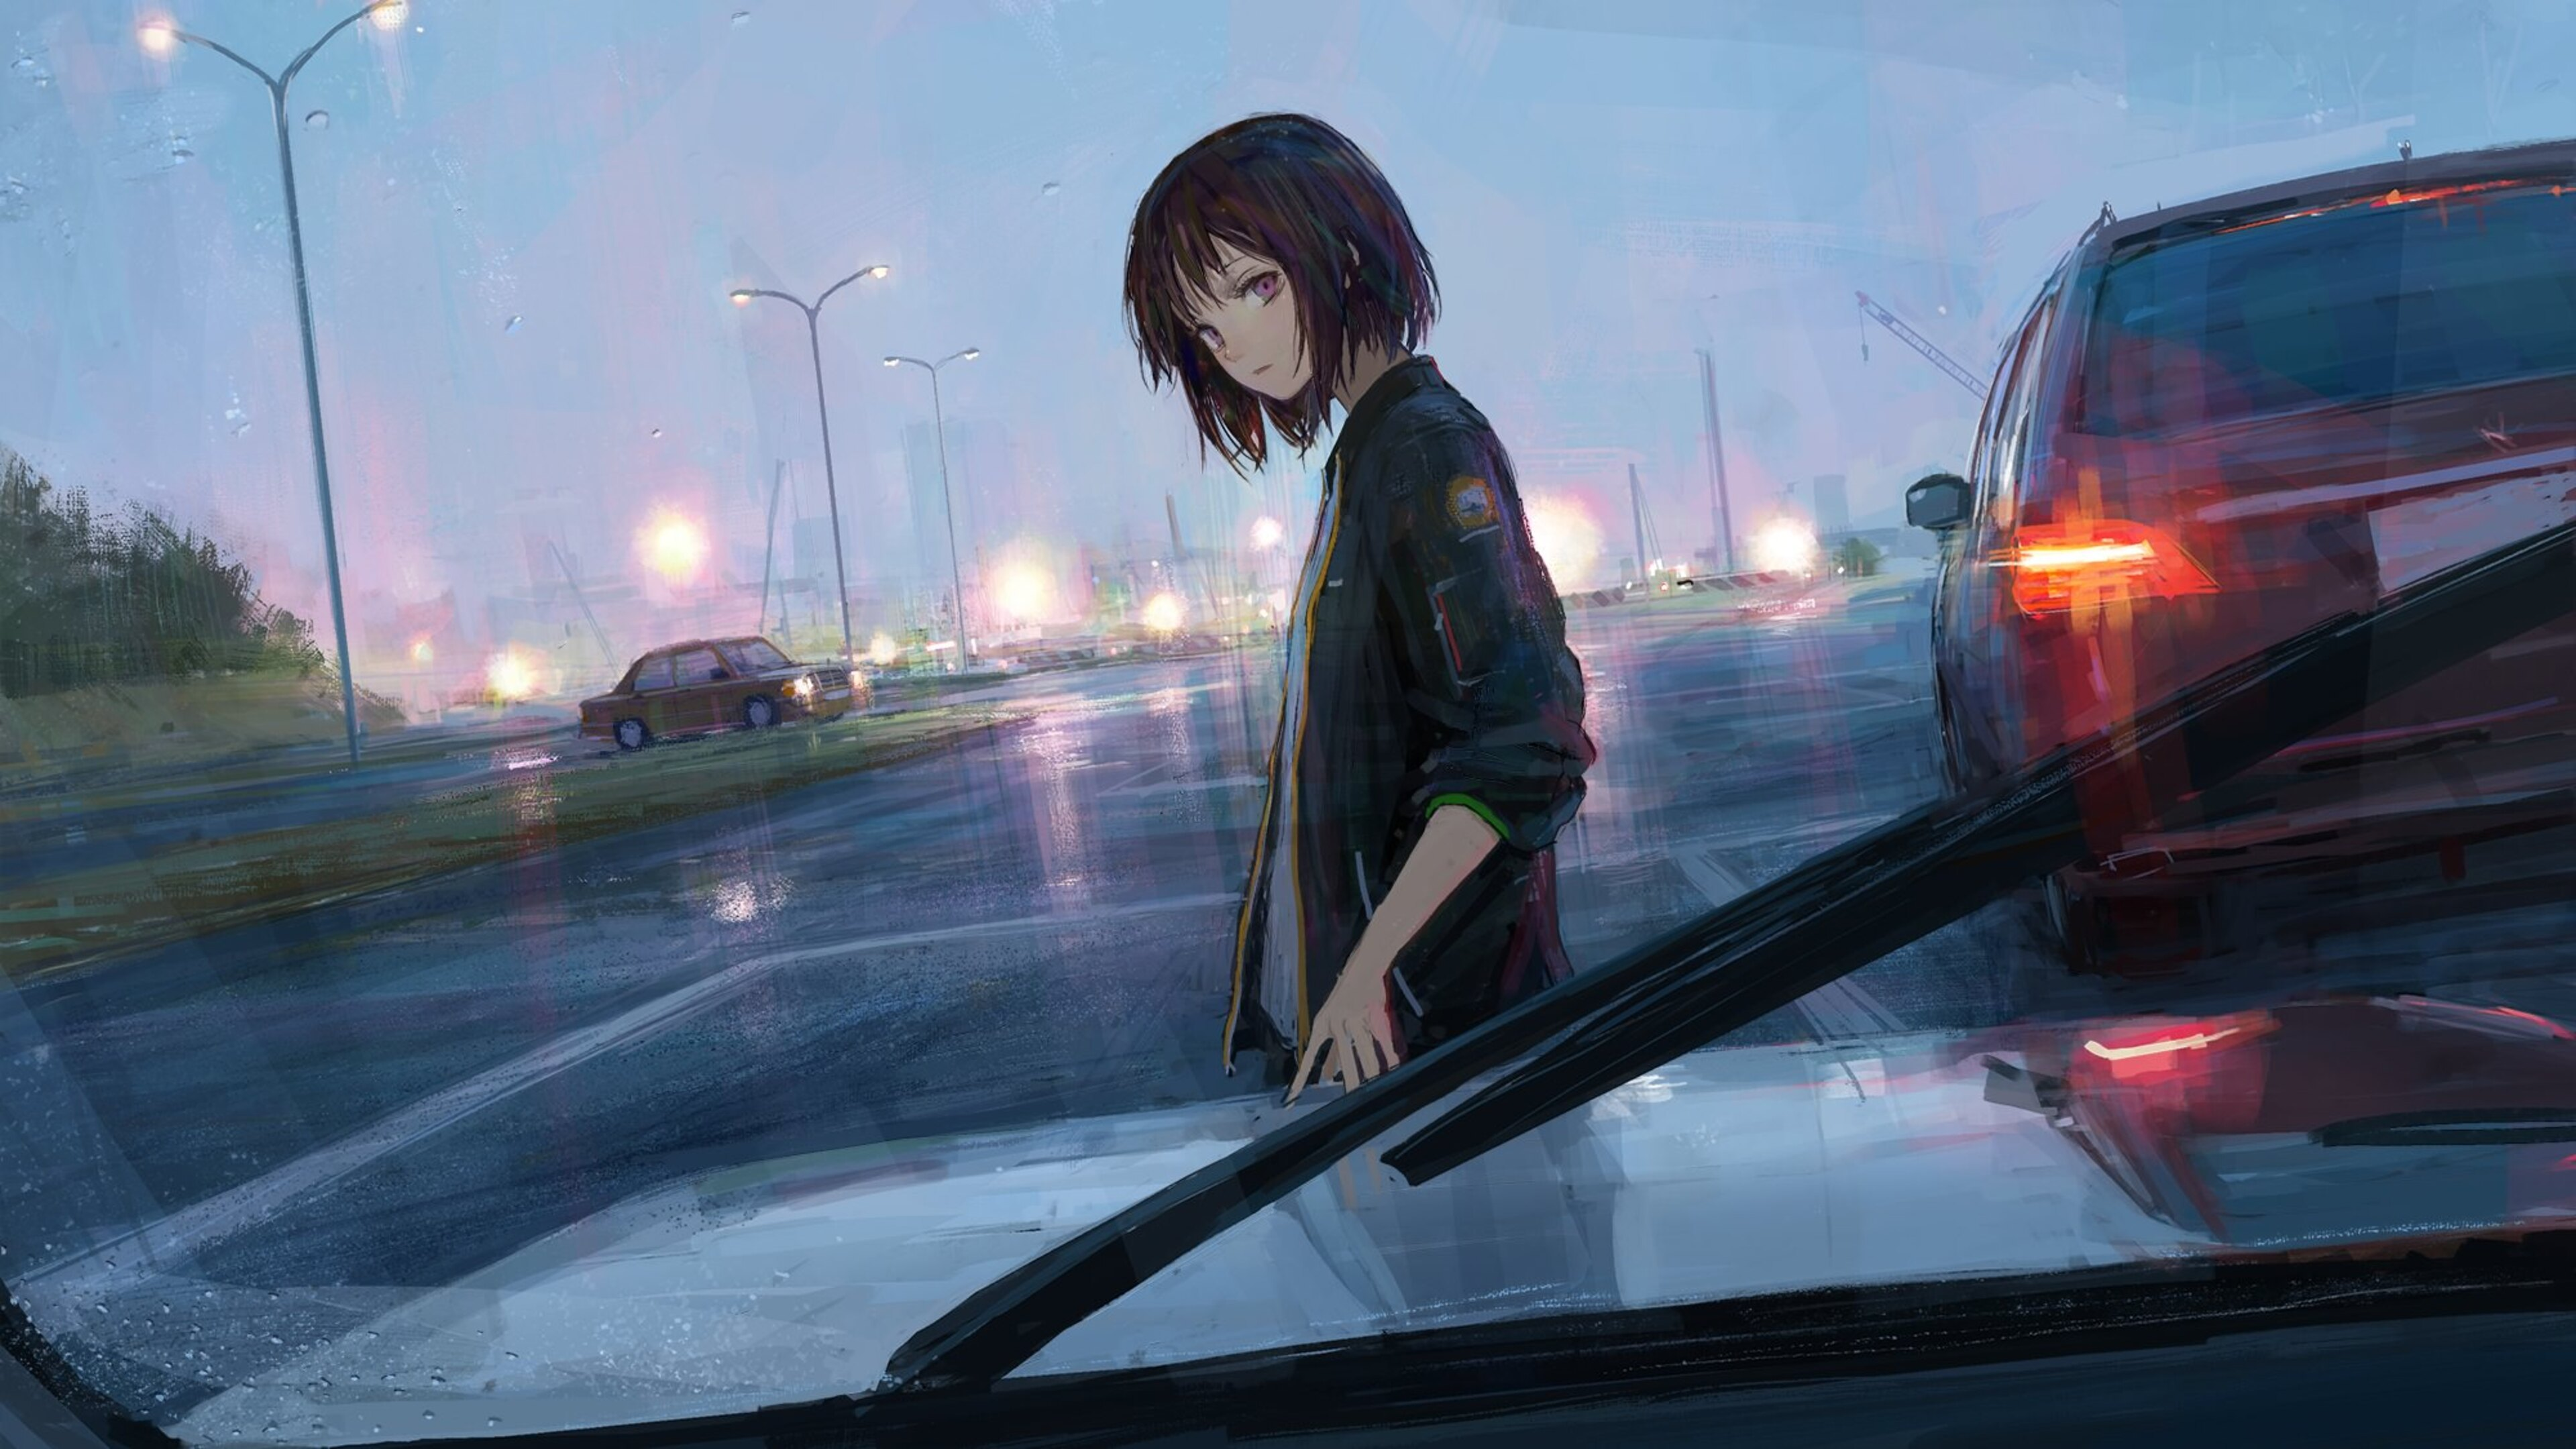 anime-girl-passing-by-looking-at-car-driver-dd.jpg